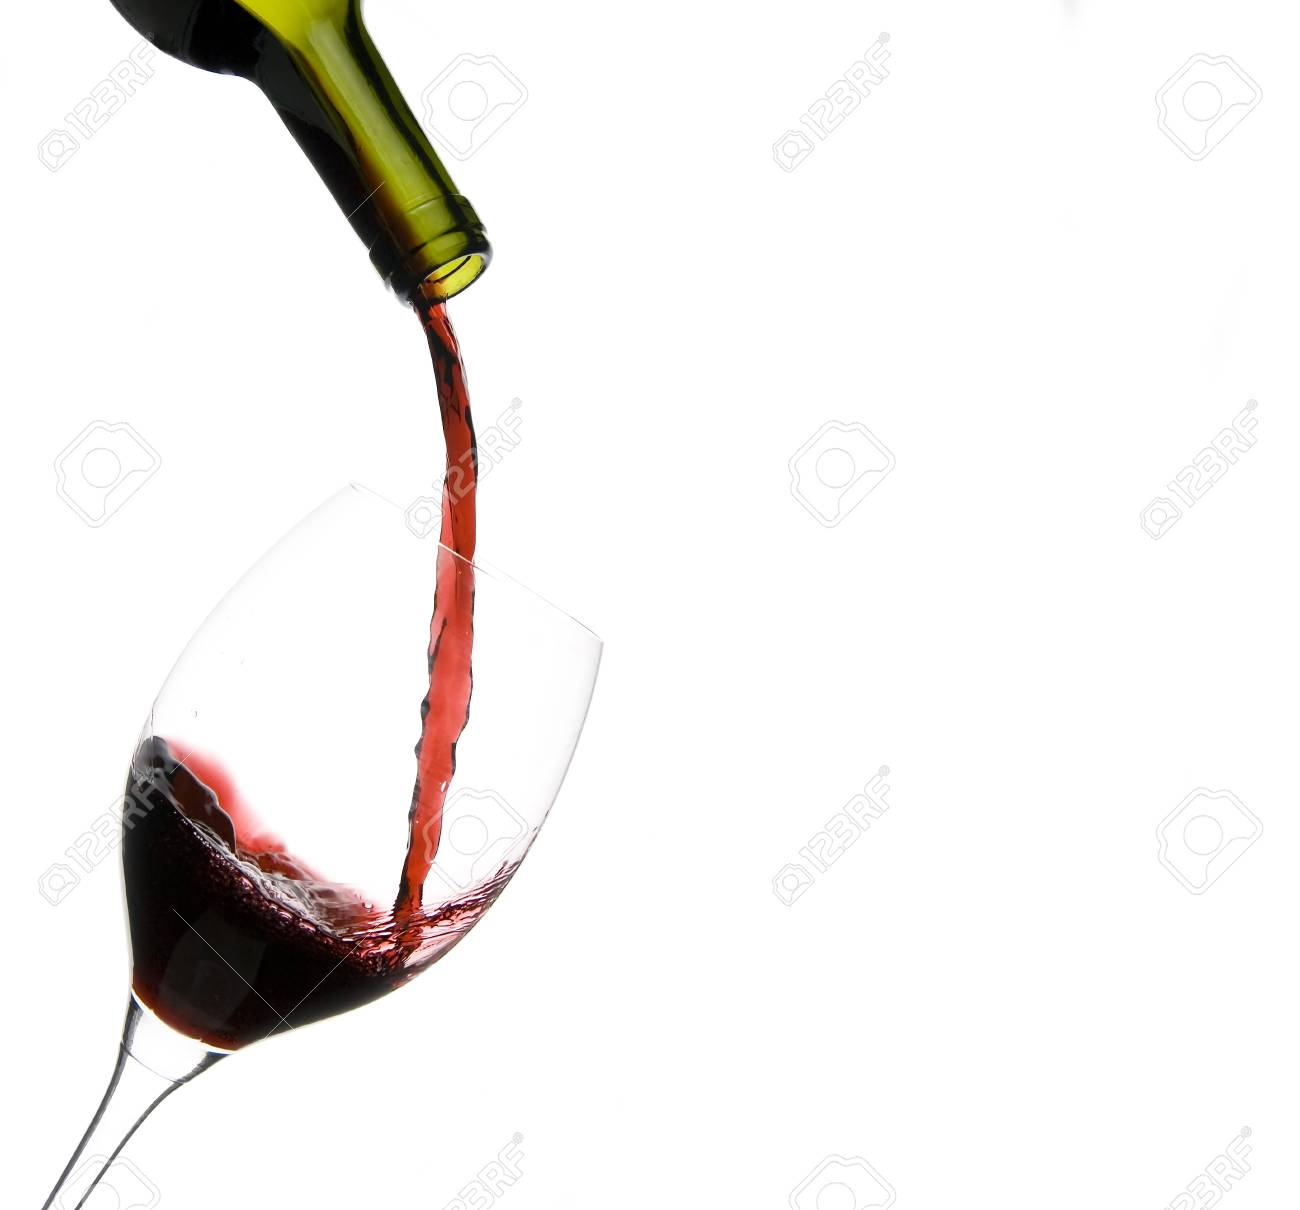 a clear glass of red wine isolated on white background Stock Photo - 4244963